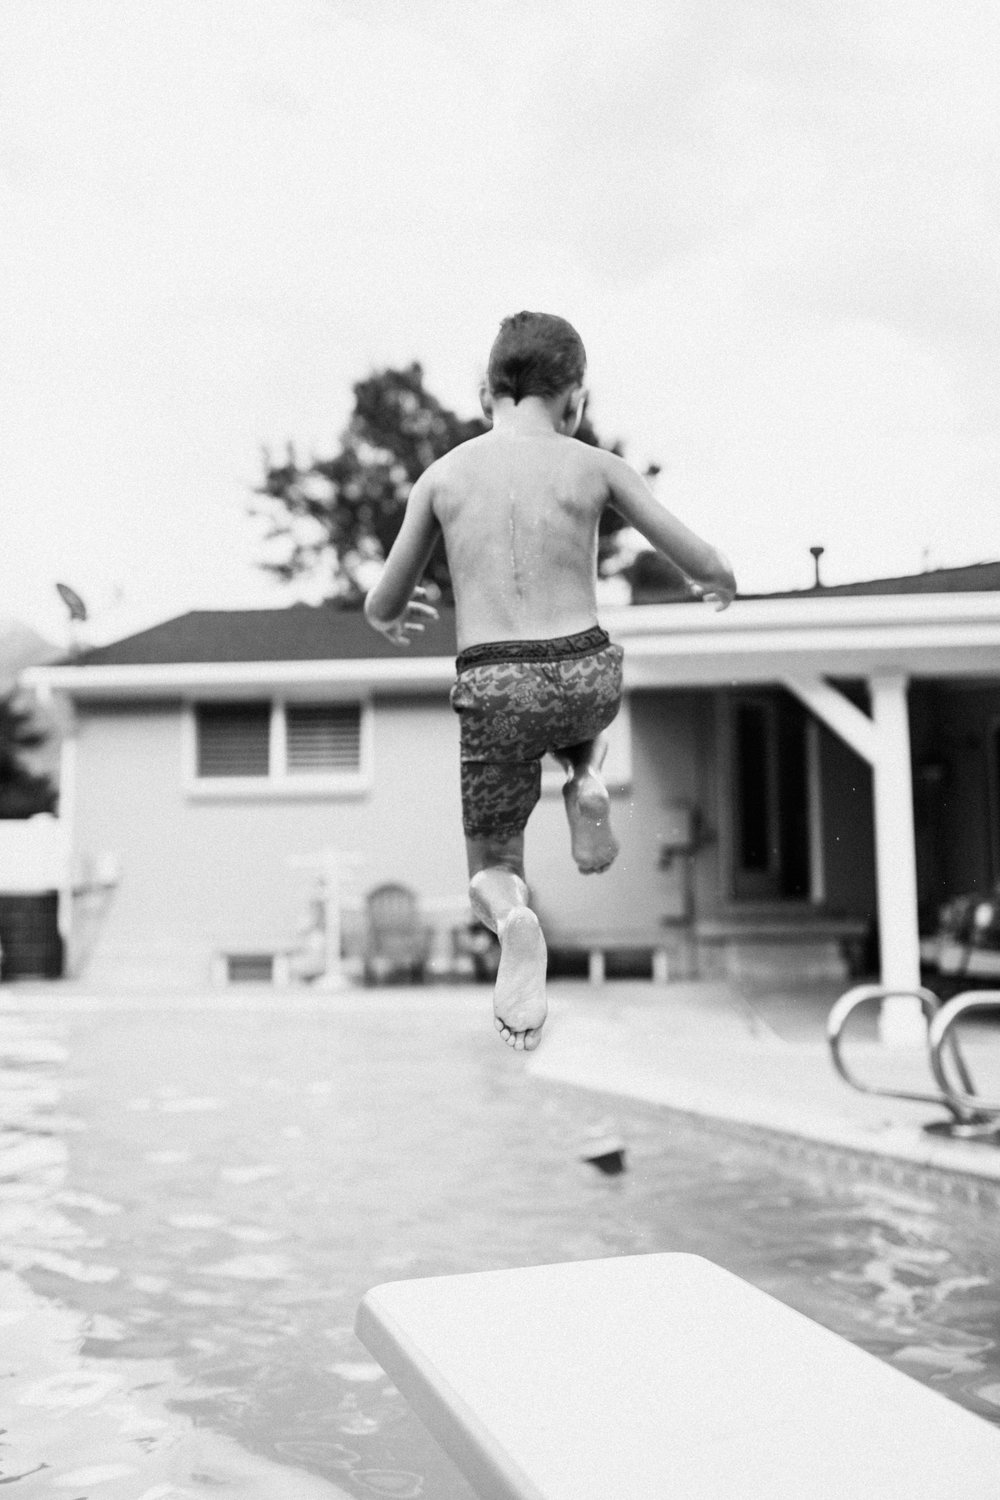 candid-photo-black-and-white-of-young-boy-jumping-off-diving-board-bountiful-utah